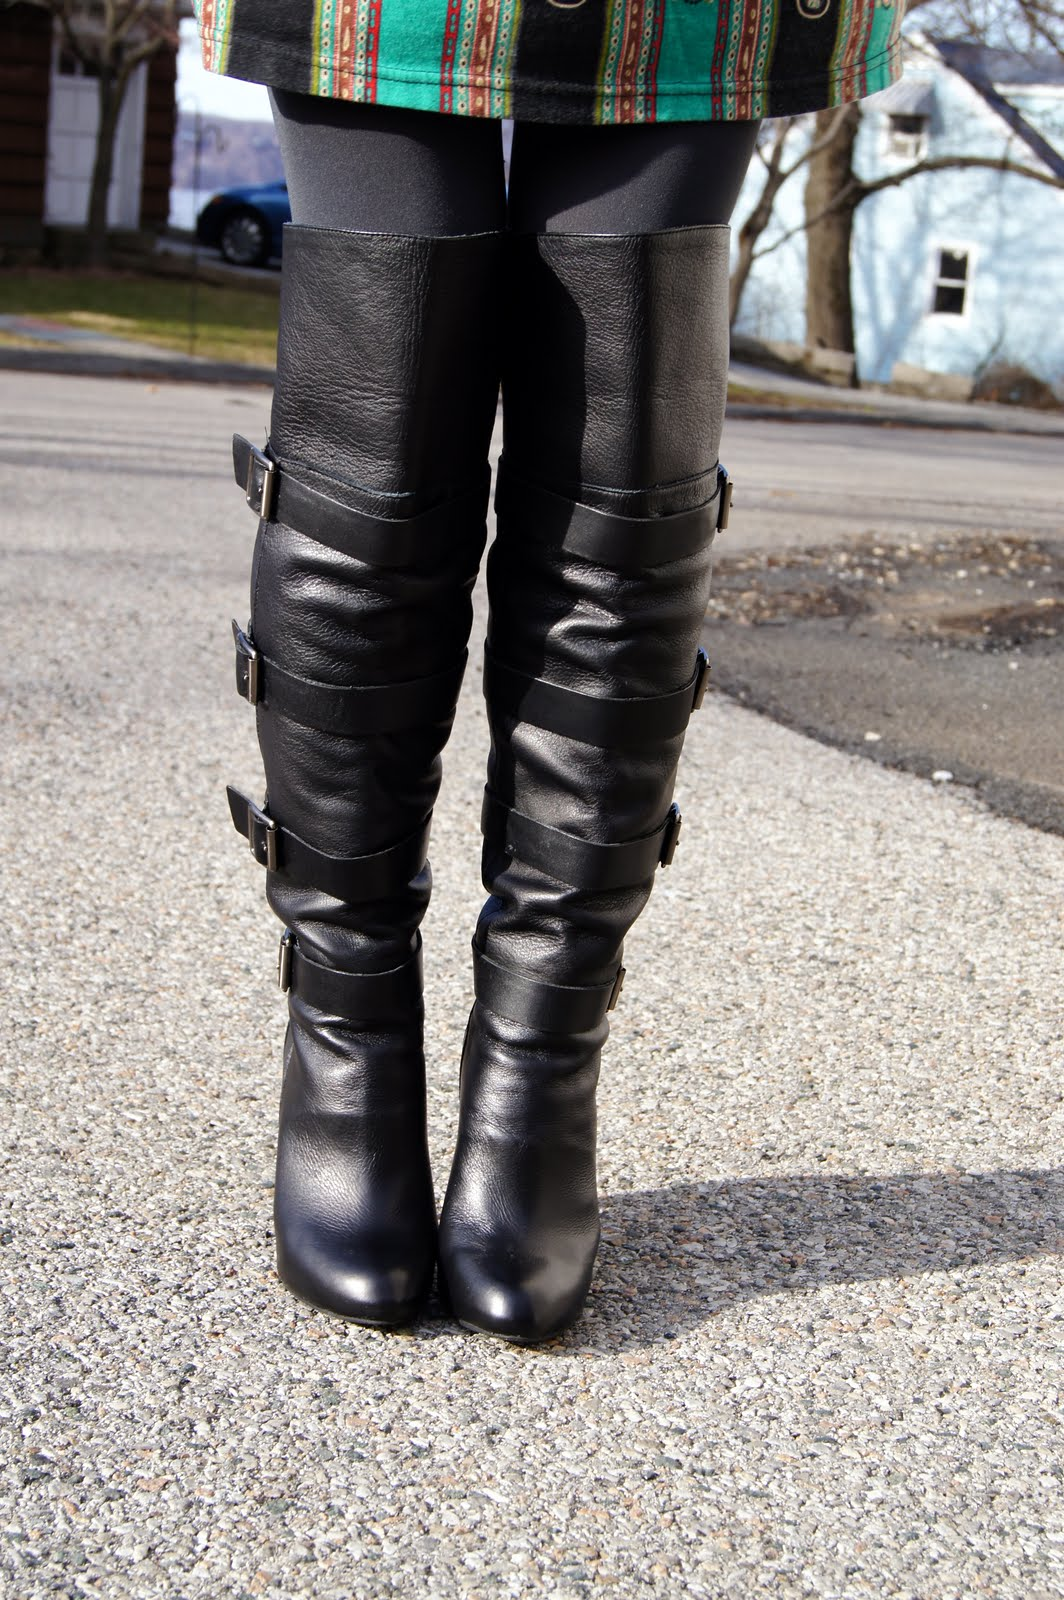 Cinderella\'s Closet: Would You Wear Over the Knee Boots?